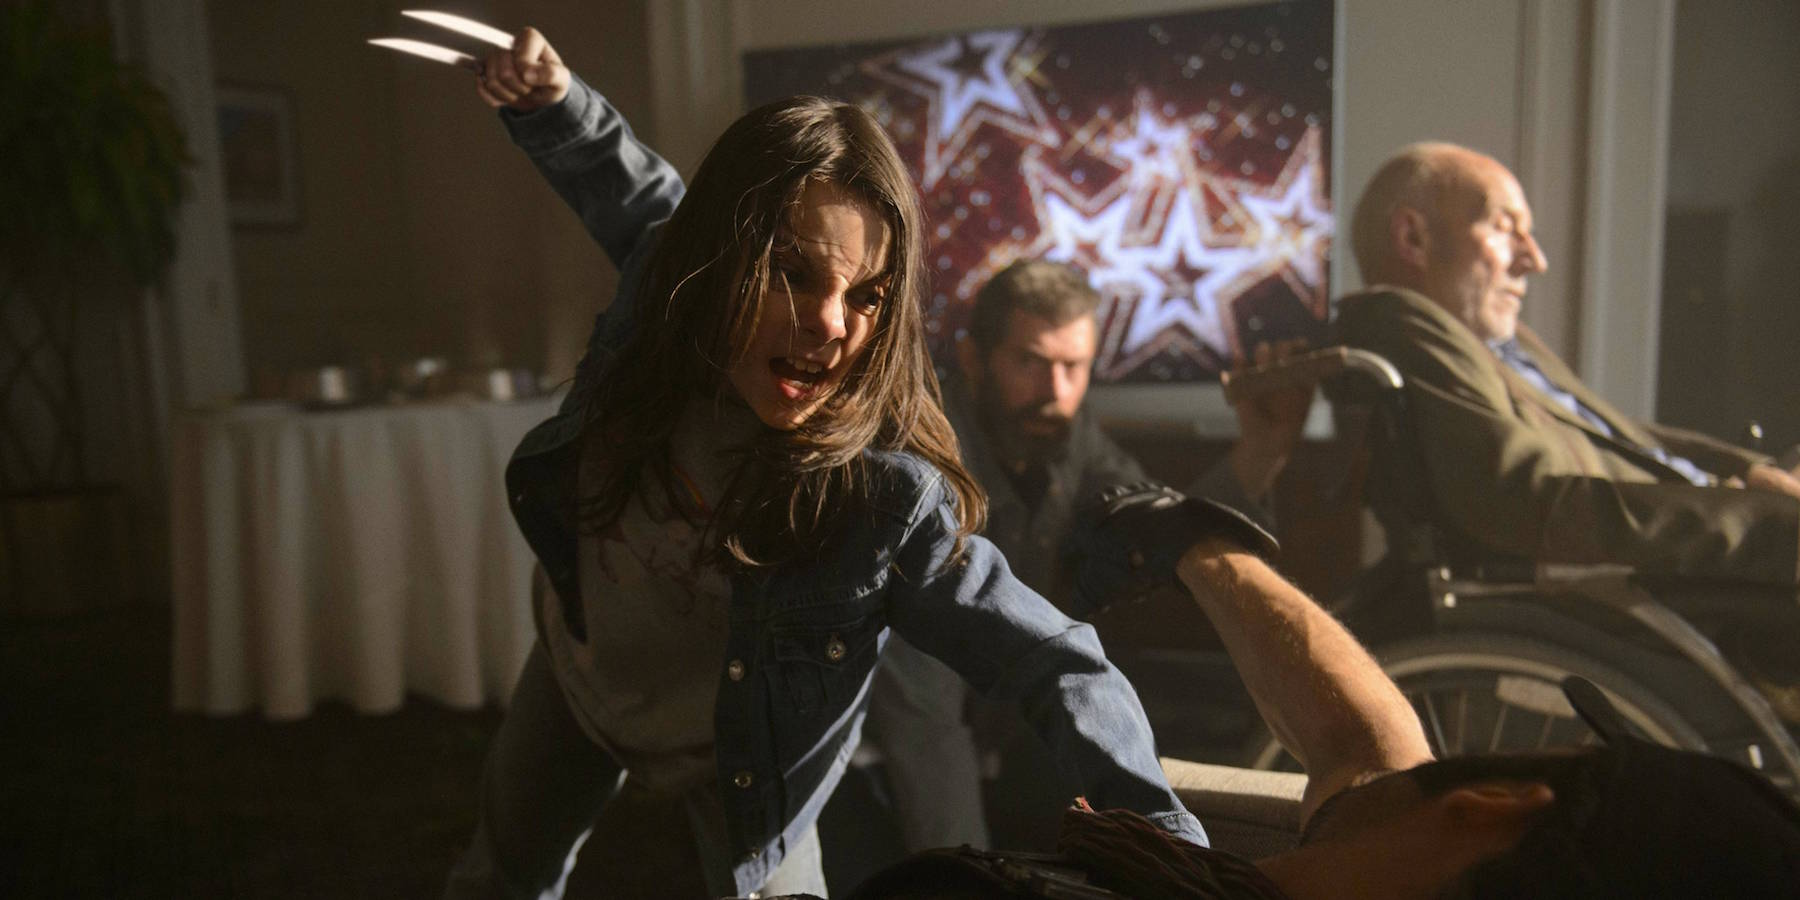 Dafne Keen as Laura/X-23 steals the show by being innocent, lovable and downright deadly at times as she shows here in a crucial scene.